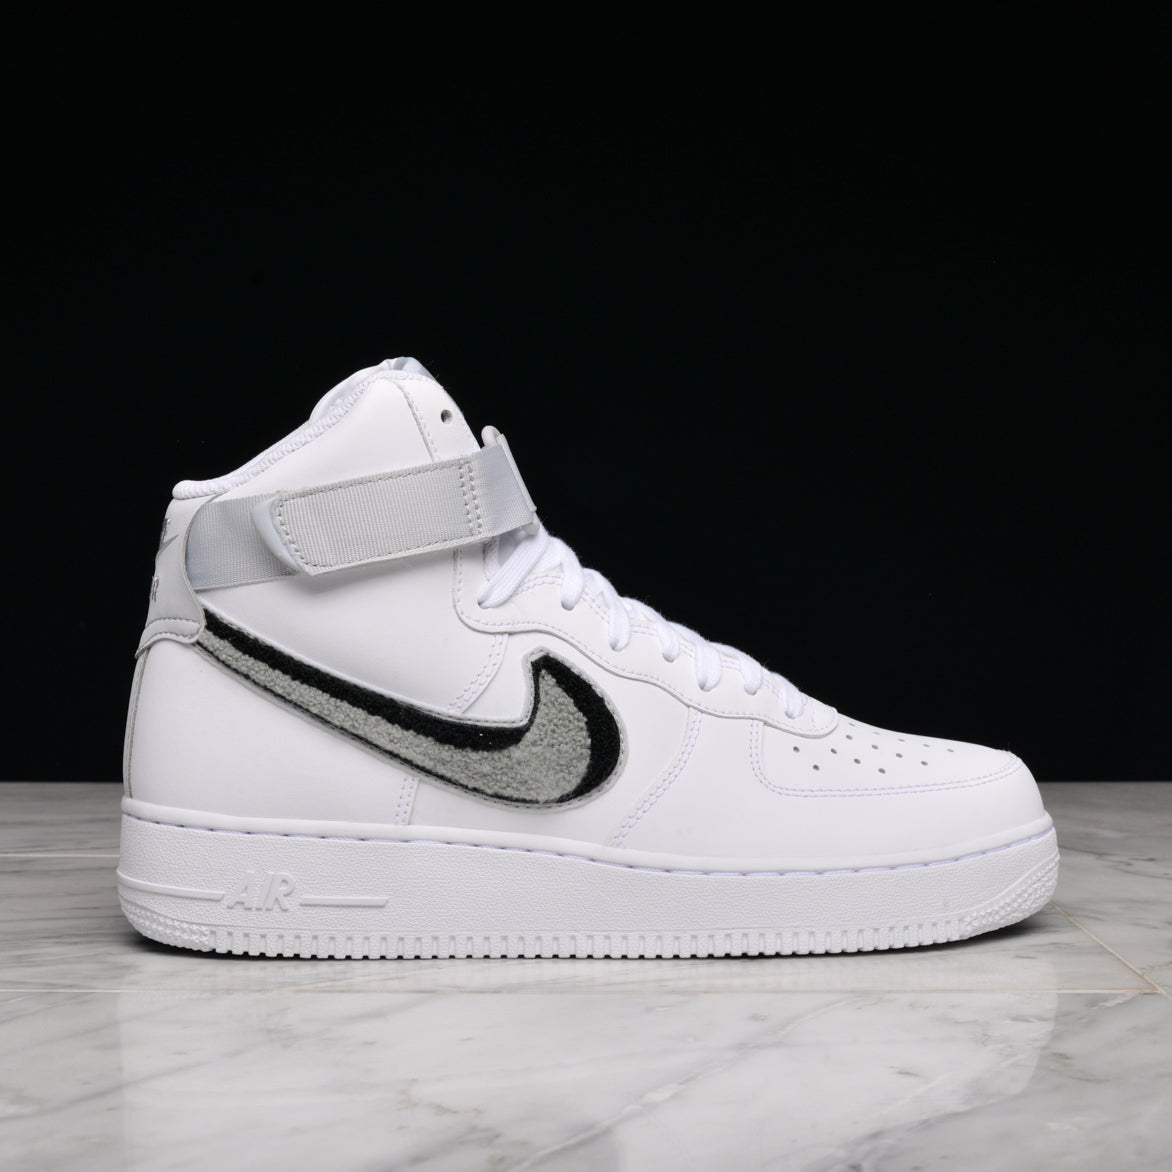 2air force 1 high 07 lv8